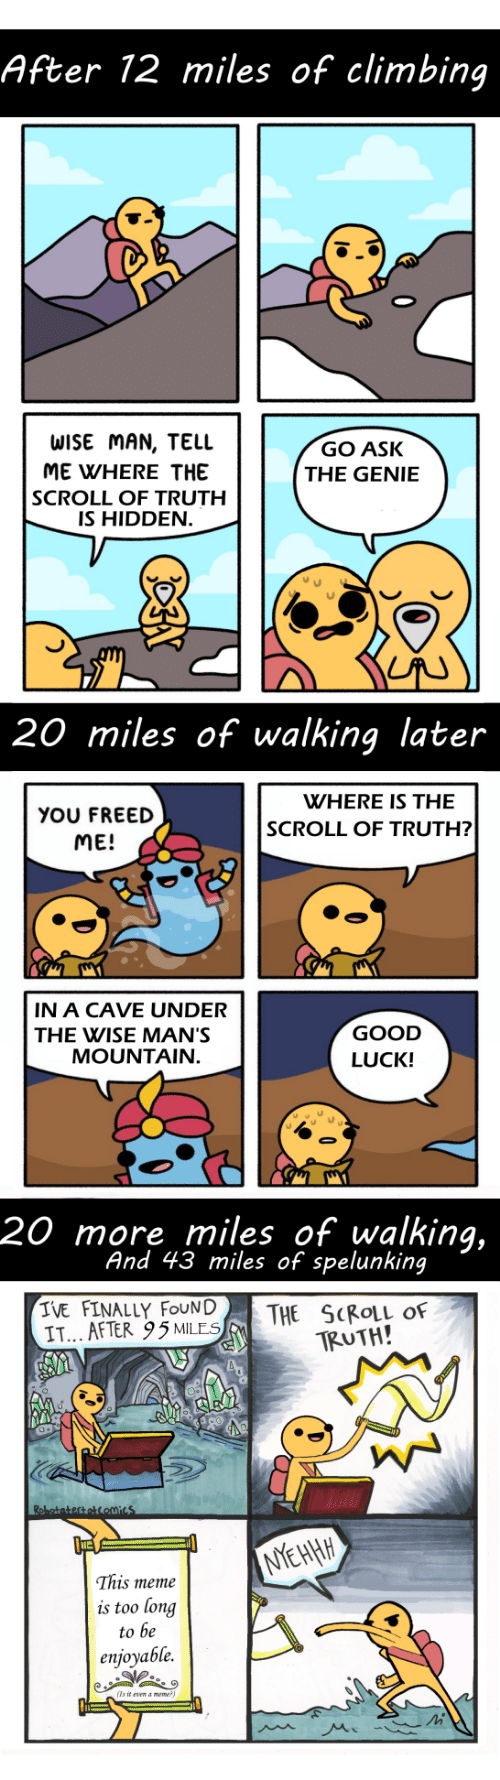 Climbing, Meme, and Good: After 12 miles of climbing  WISE MAN, TELL  ME WHERE THE  SCROLL OF TRUTH  IS HIDDEN  GO ASK  THE GENIE  20 miles of walking later  WHERE IS THE  YOU FREED  ME!  SCROLL OF TRUTH?  IN A CAVE UNDER  THE WISE MAN'S  GOOD  LUCK!  MOUNTAIN  20 more miles of walking,  And 43 miles of spelunking  IVE FINALLY FOUN|  IT... AFTER 95MLES  THE SCROLL OF  TRUTH!  This meme  is too long  to be  enjoyable.  (Ts it vn a meme